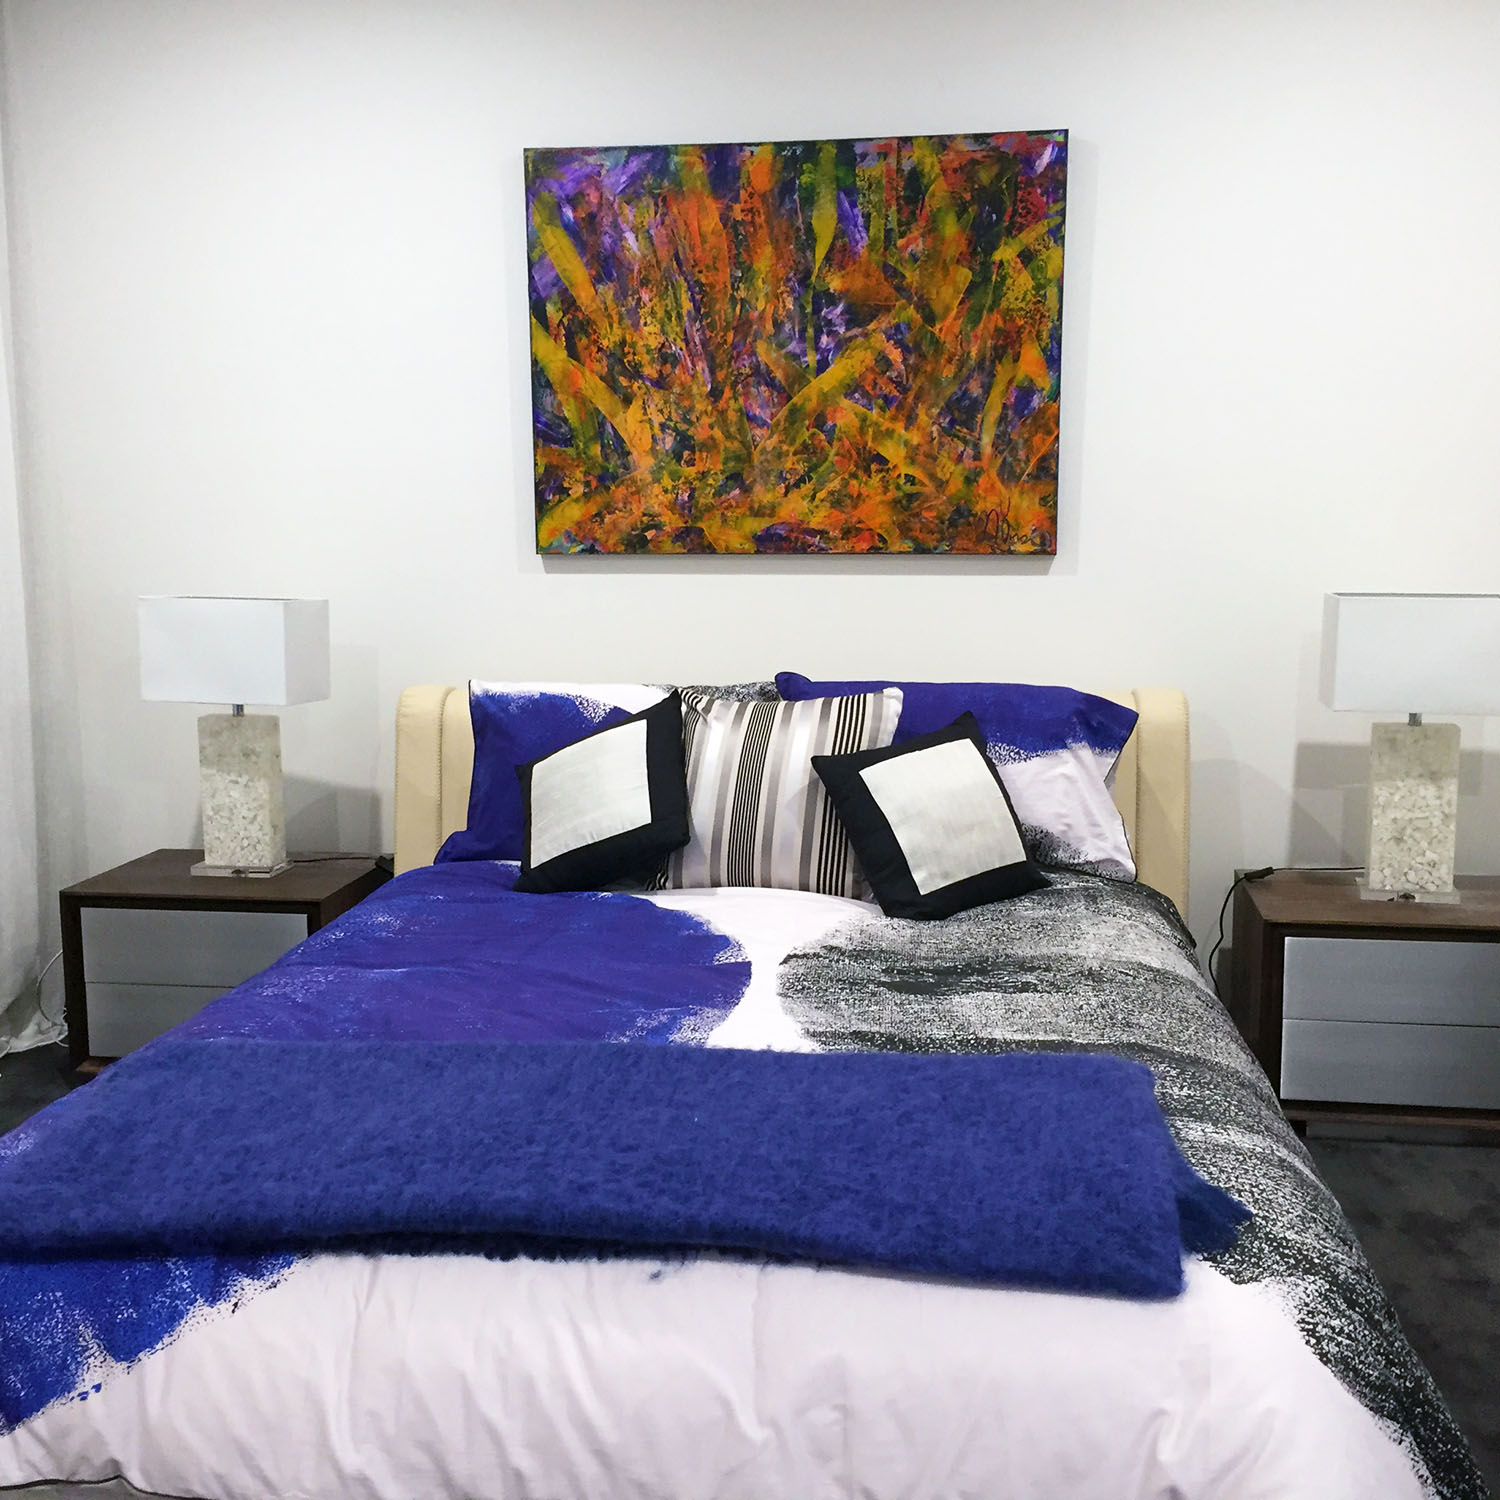 Orange Spectra - SOLD and on display in collector's home looking amazing! Artwork by Nestor Toro